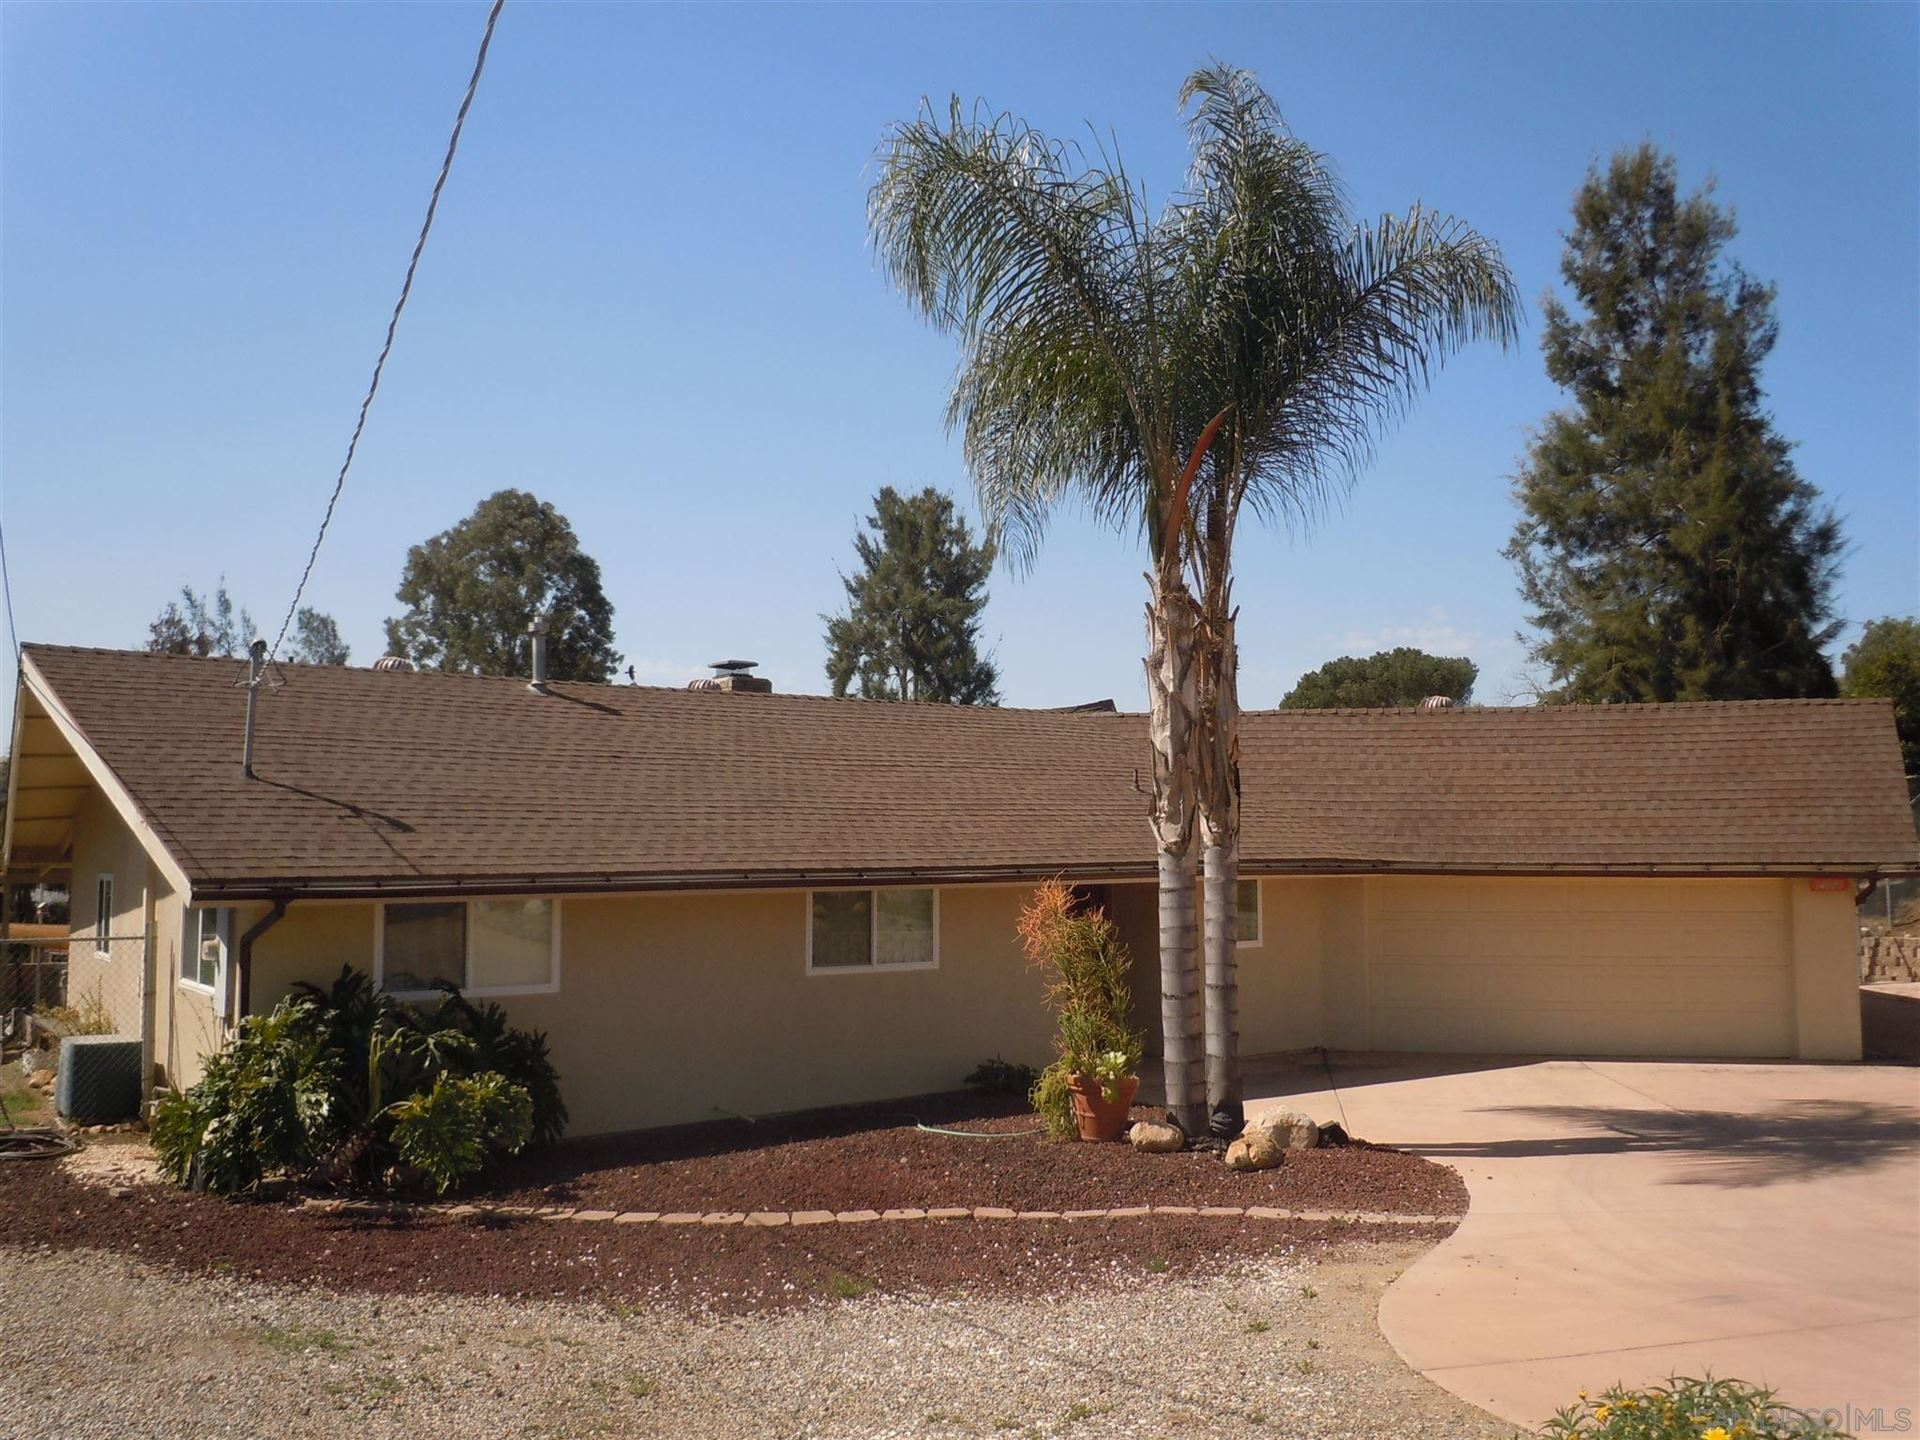 Photo of 14009 Earie, Poway, CA 92064 (MLS # 210008458)